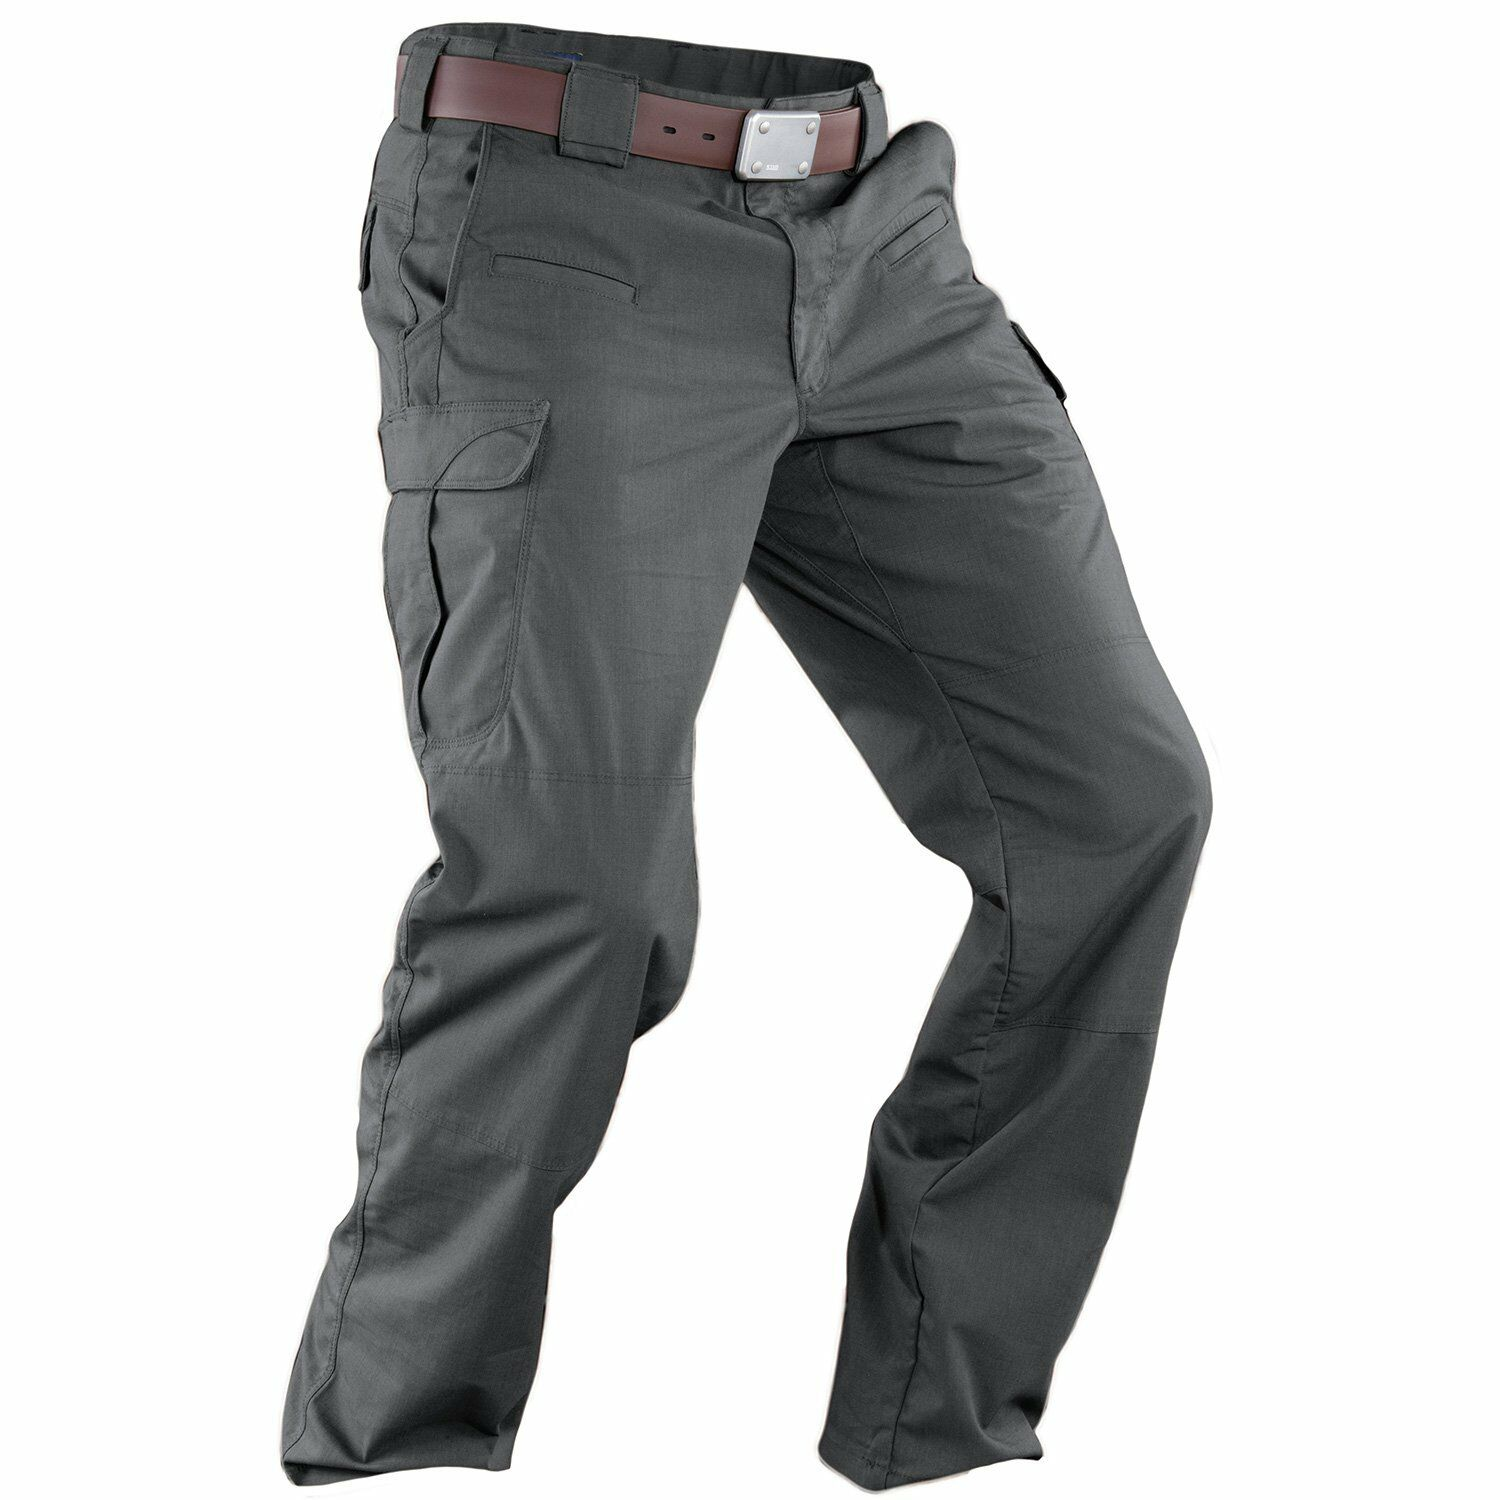 5.11 Tactical Stryke Pants Pant - Storm All Sizes